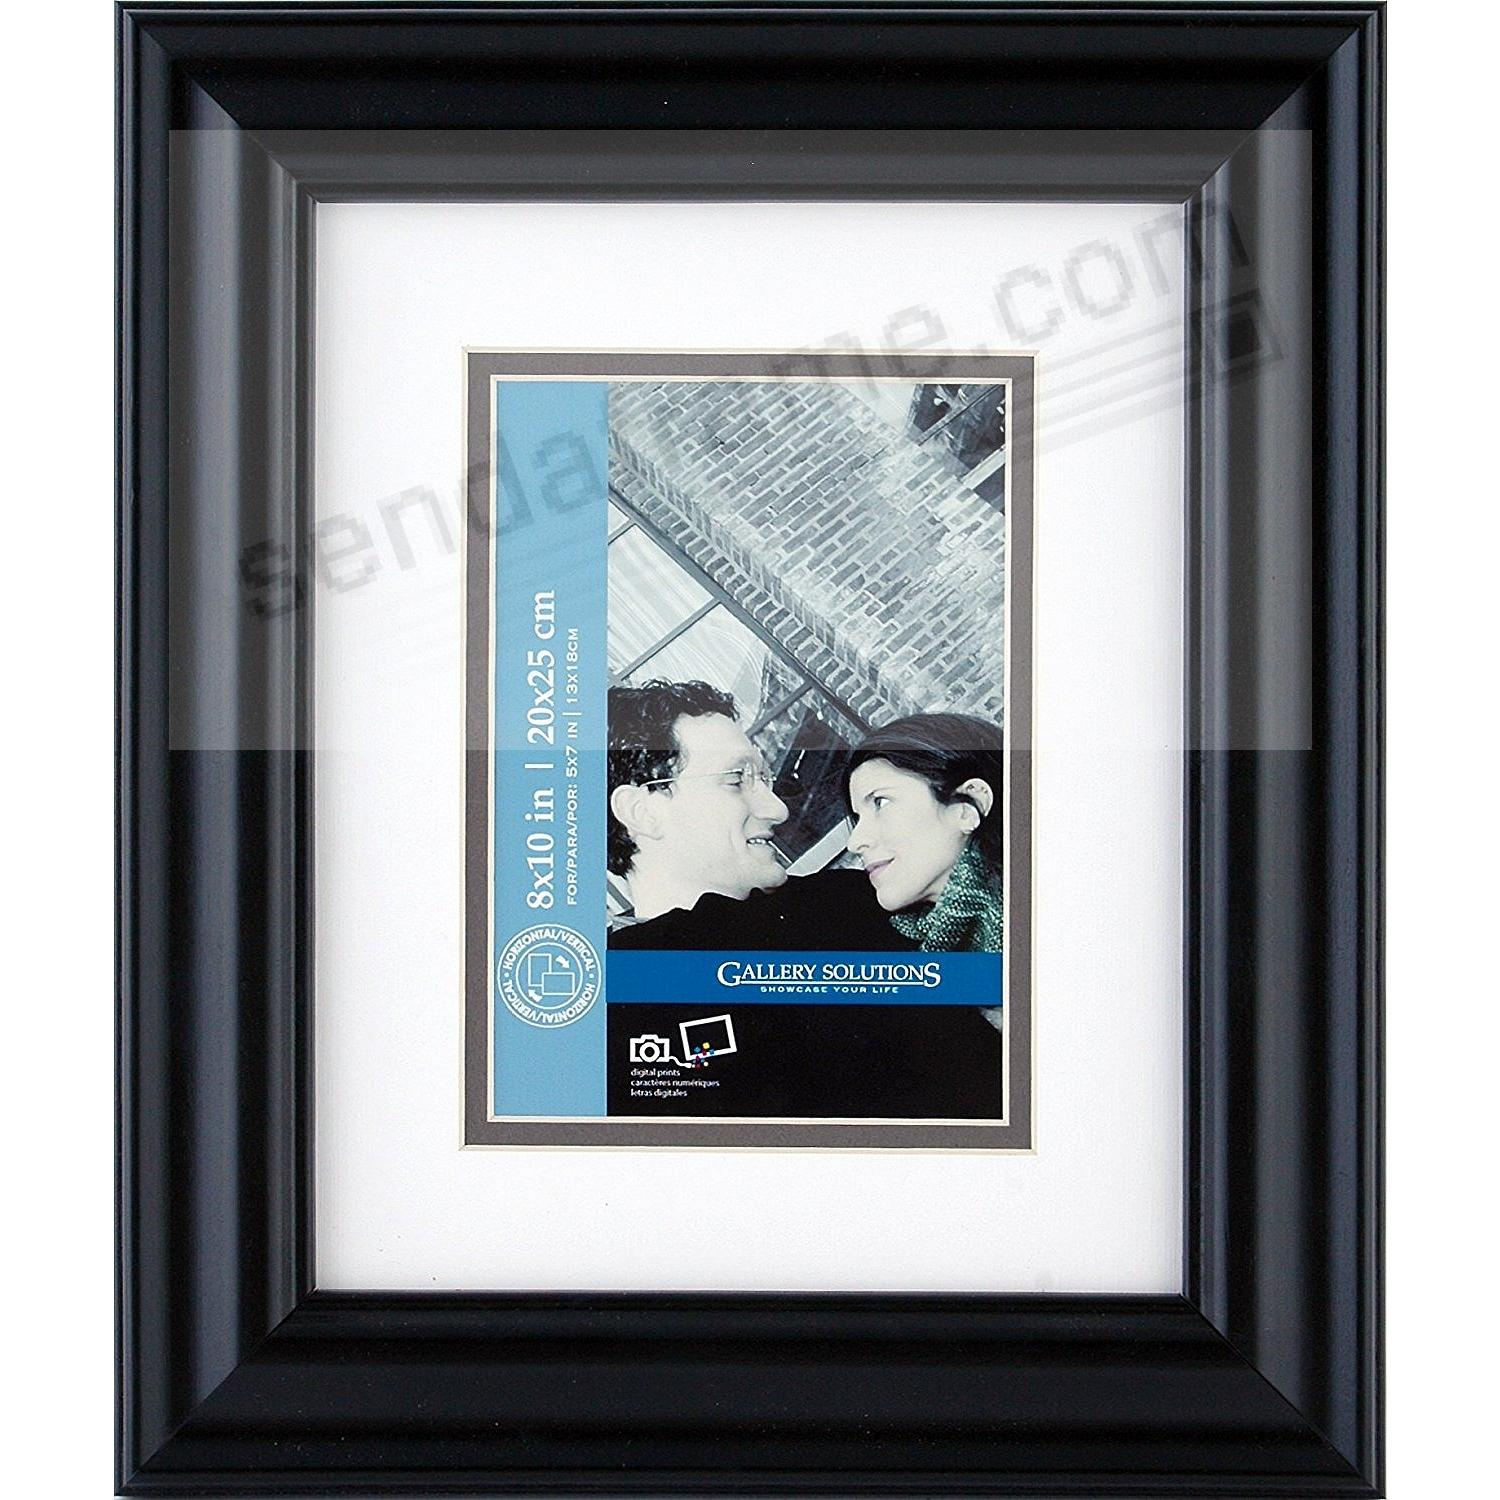 SATIN BLACK 8x10/5x7  frame by Gallery Solutions®